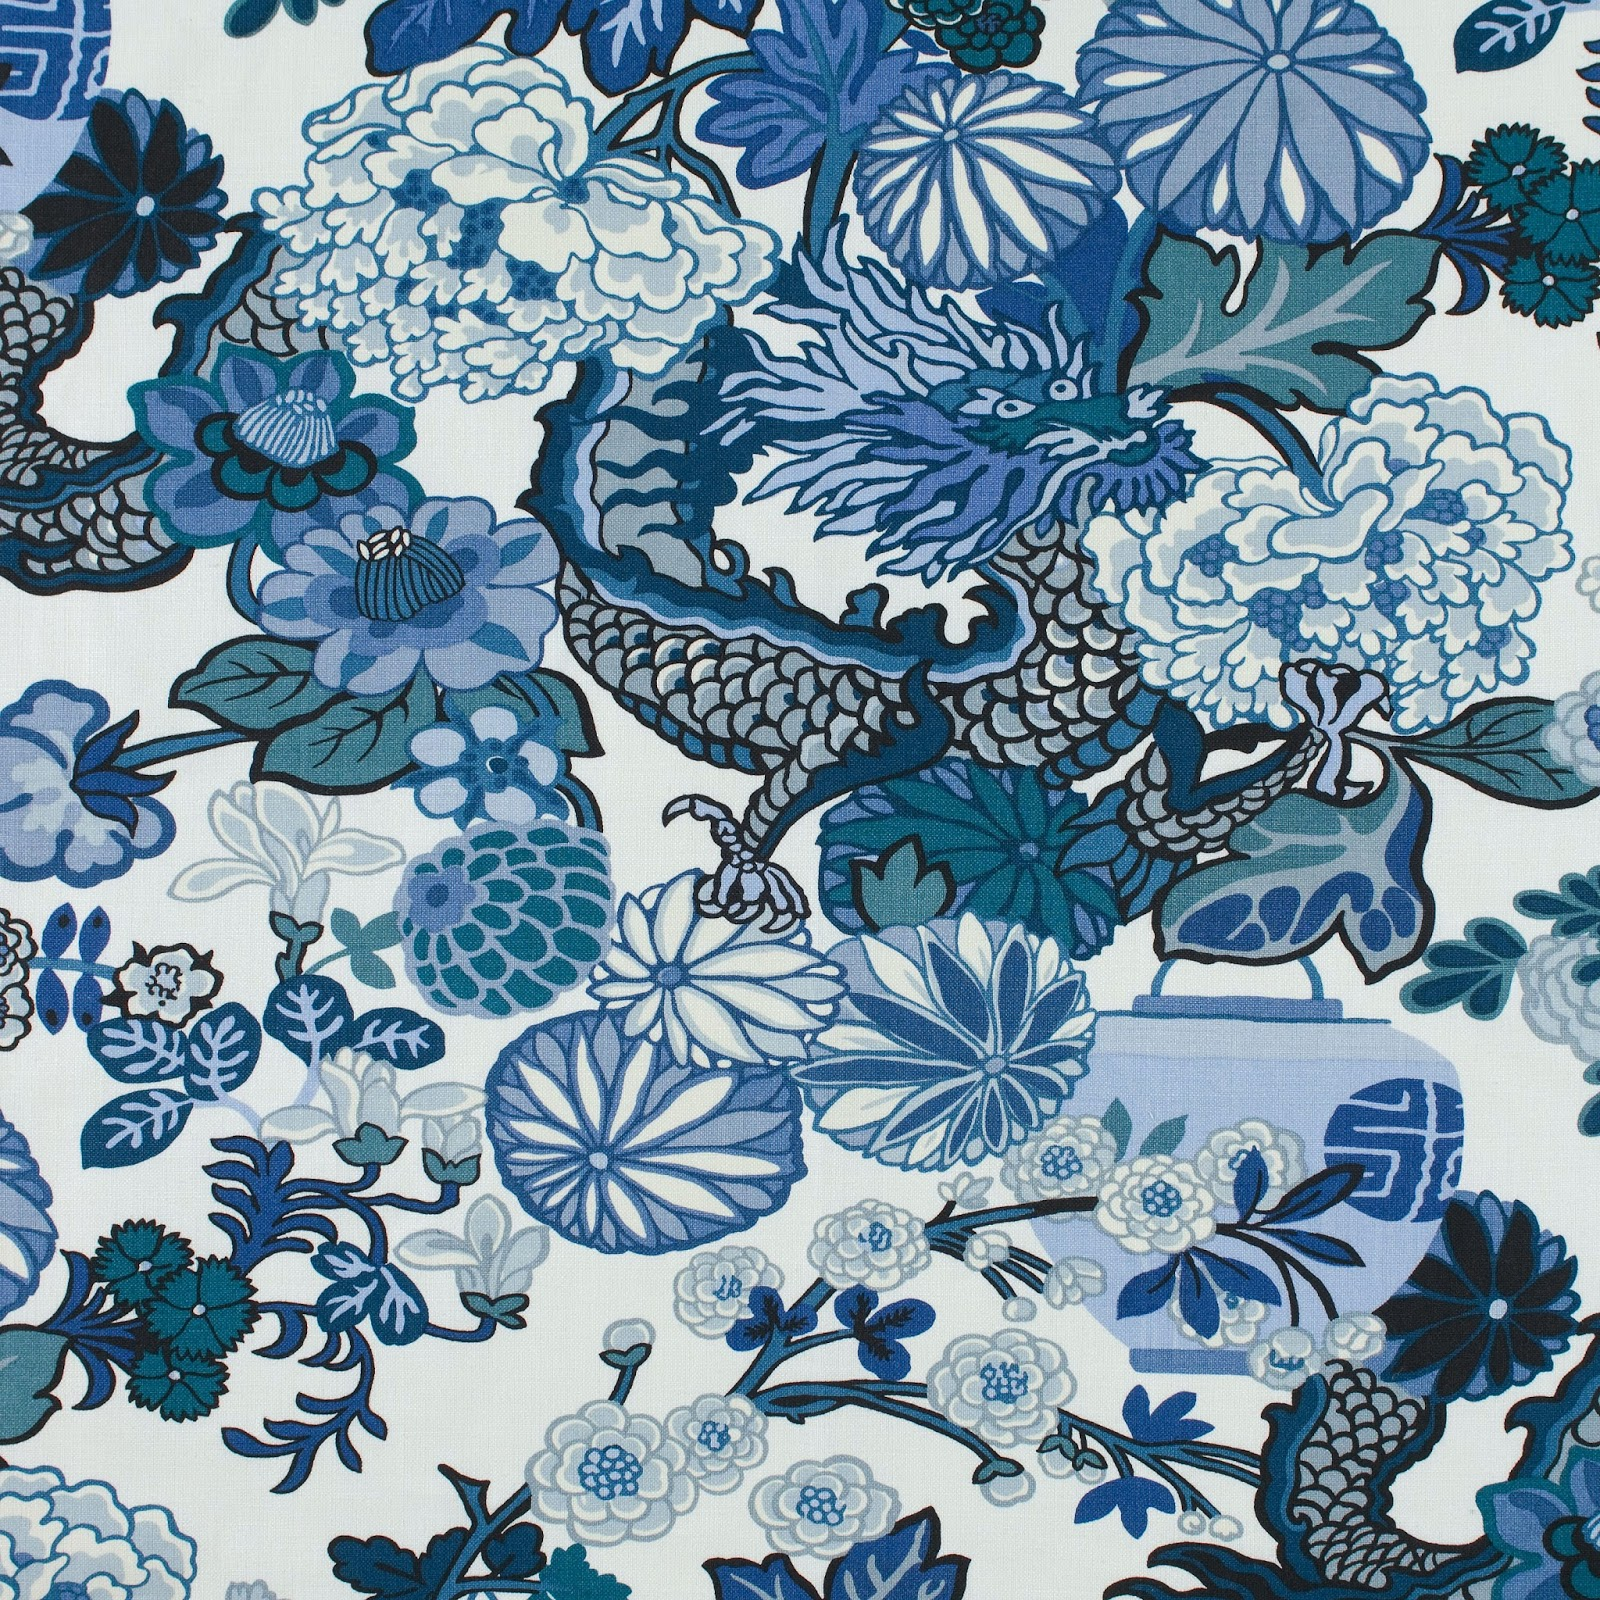 Chinese Fabric Patterns Cool Decorating Design